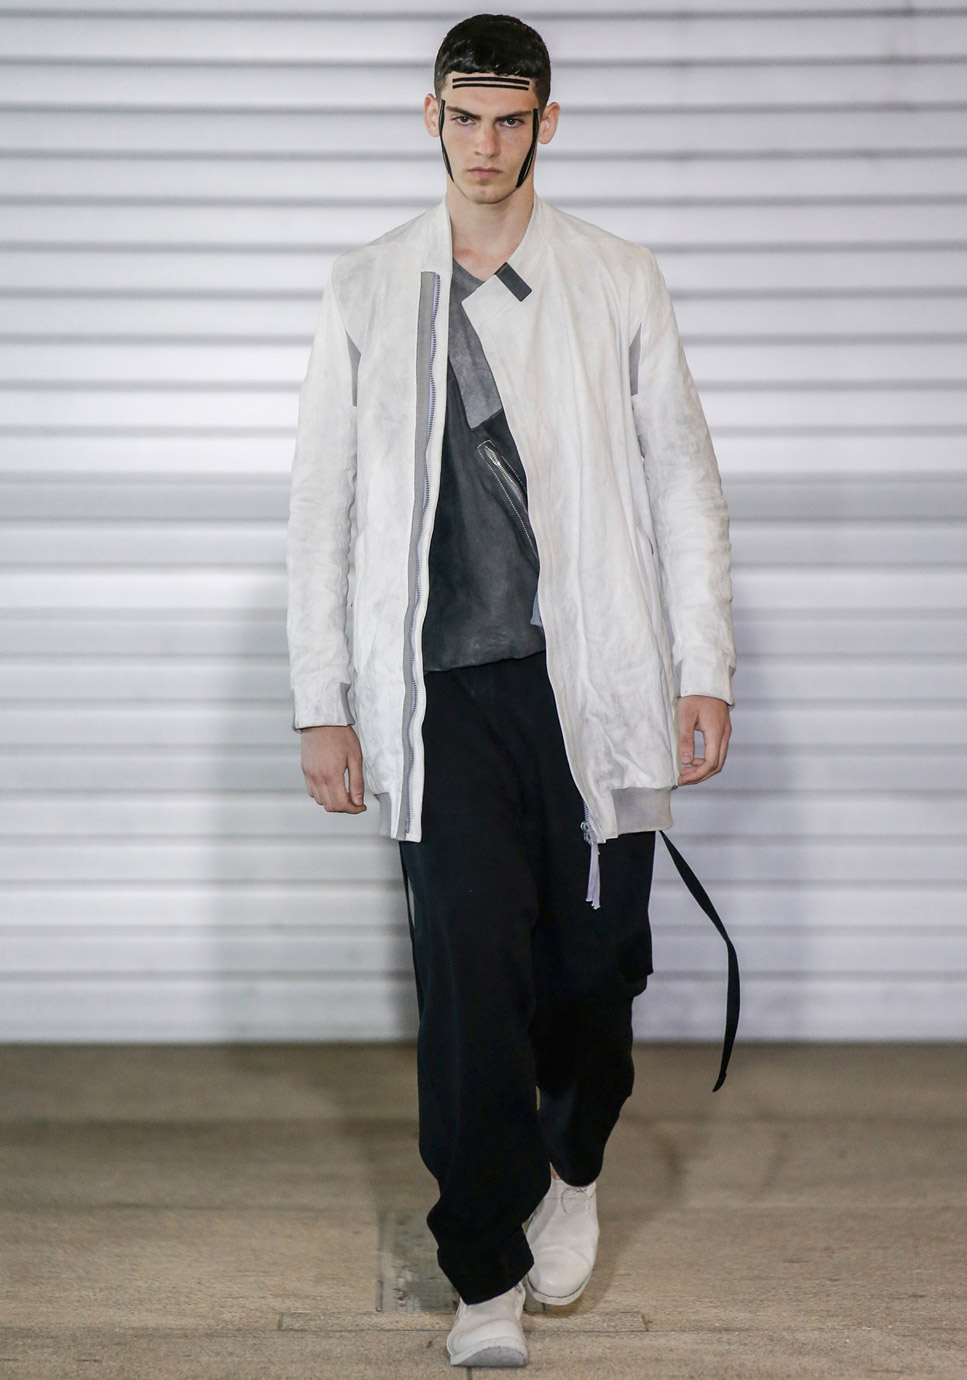 Lookbook_SS19-Boris-Bidjan-Saberi-Paris-Fashion-Week-2018-2.jpg